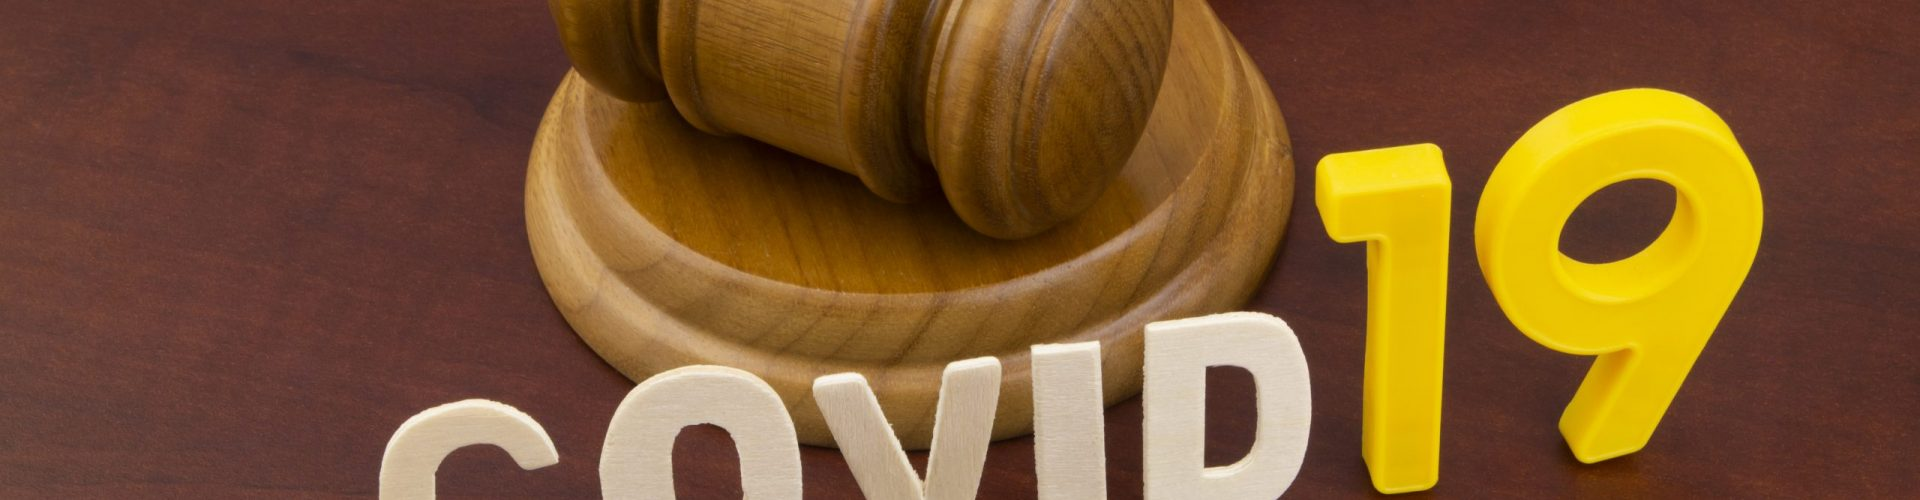 Wooden judge gavel with word covid19. Concept of quarantine and law against covid-19.